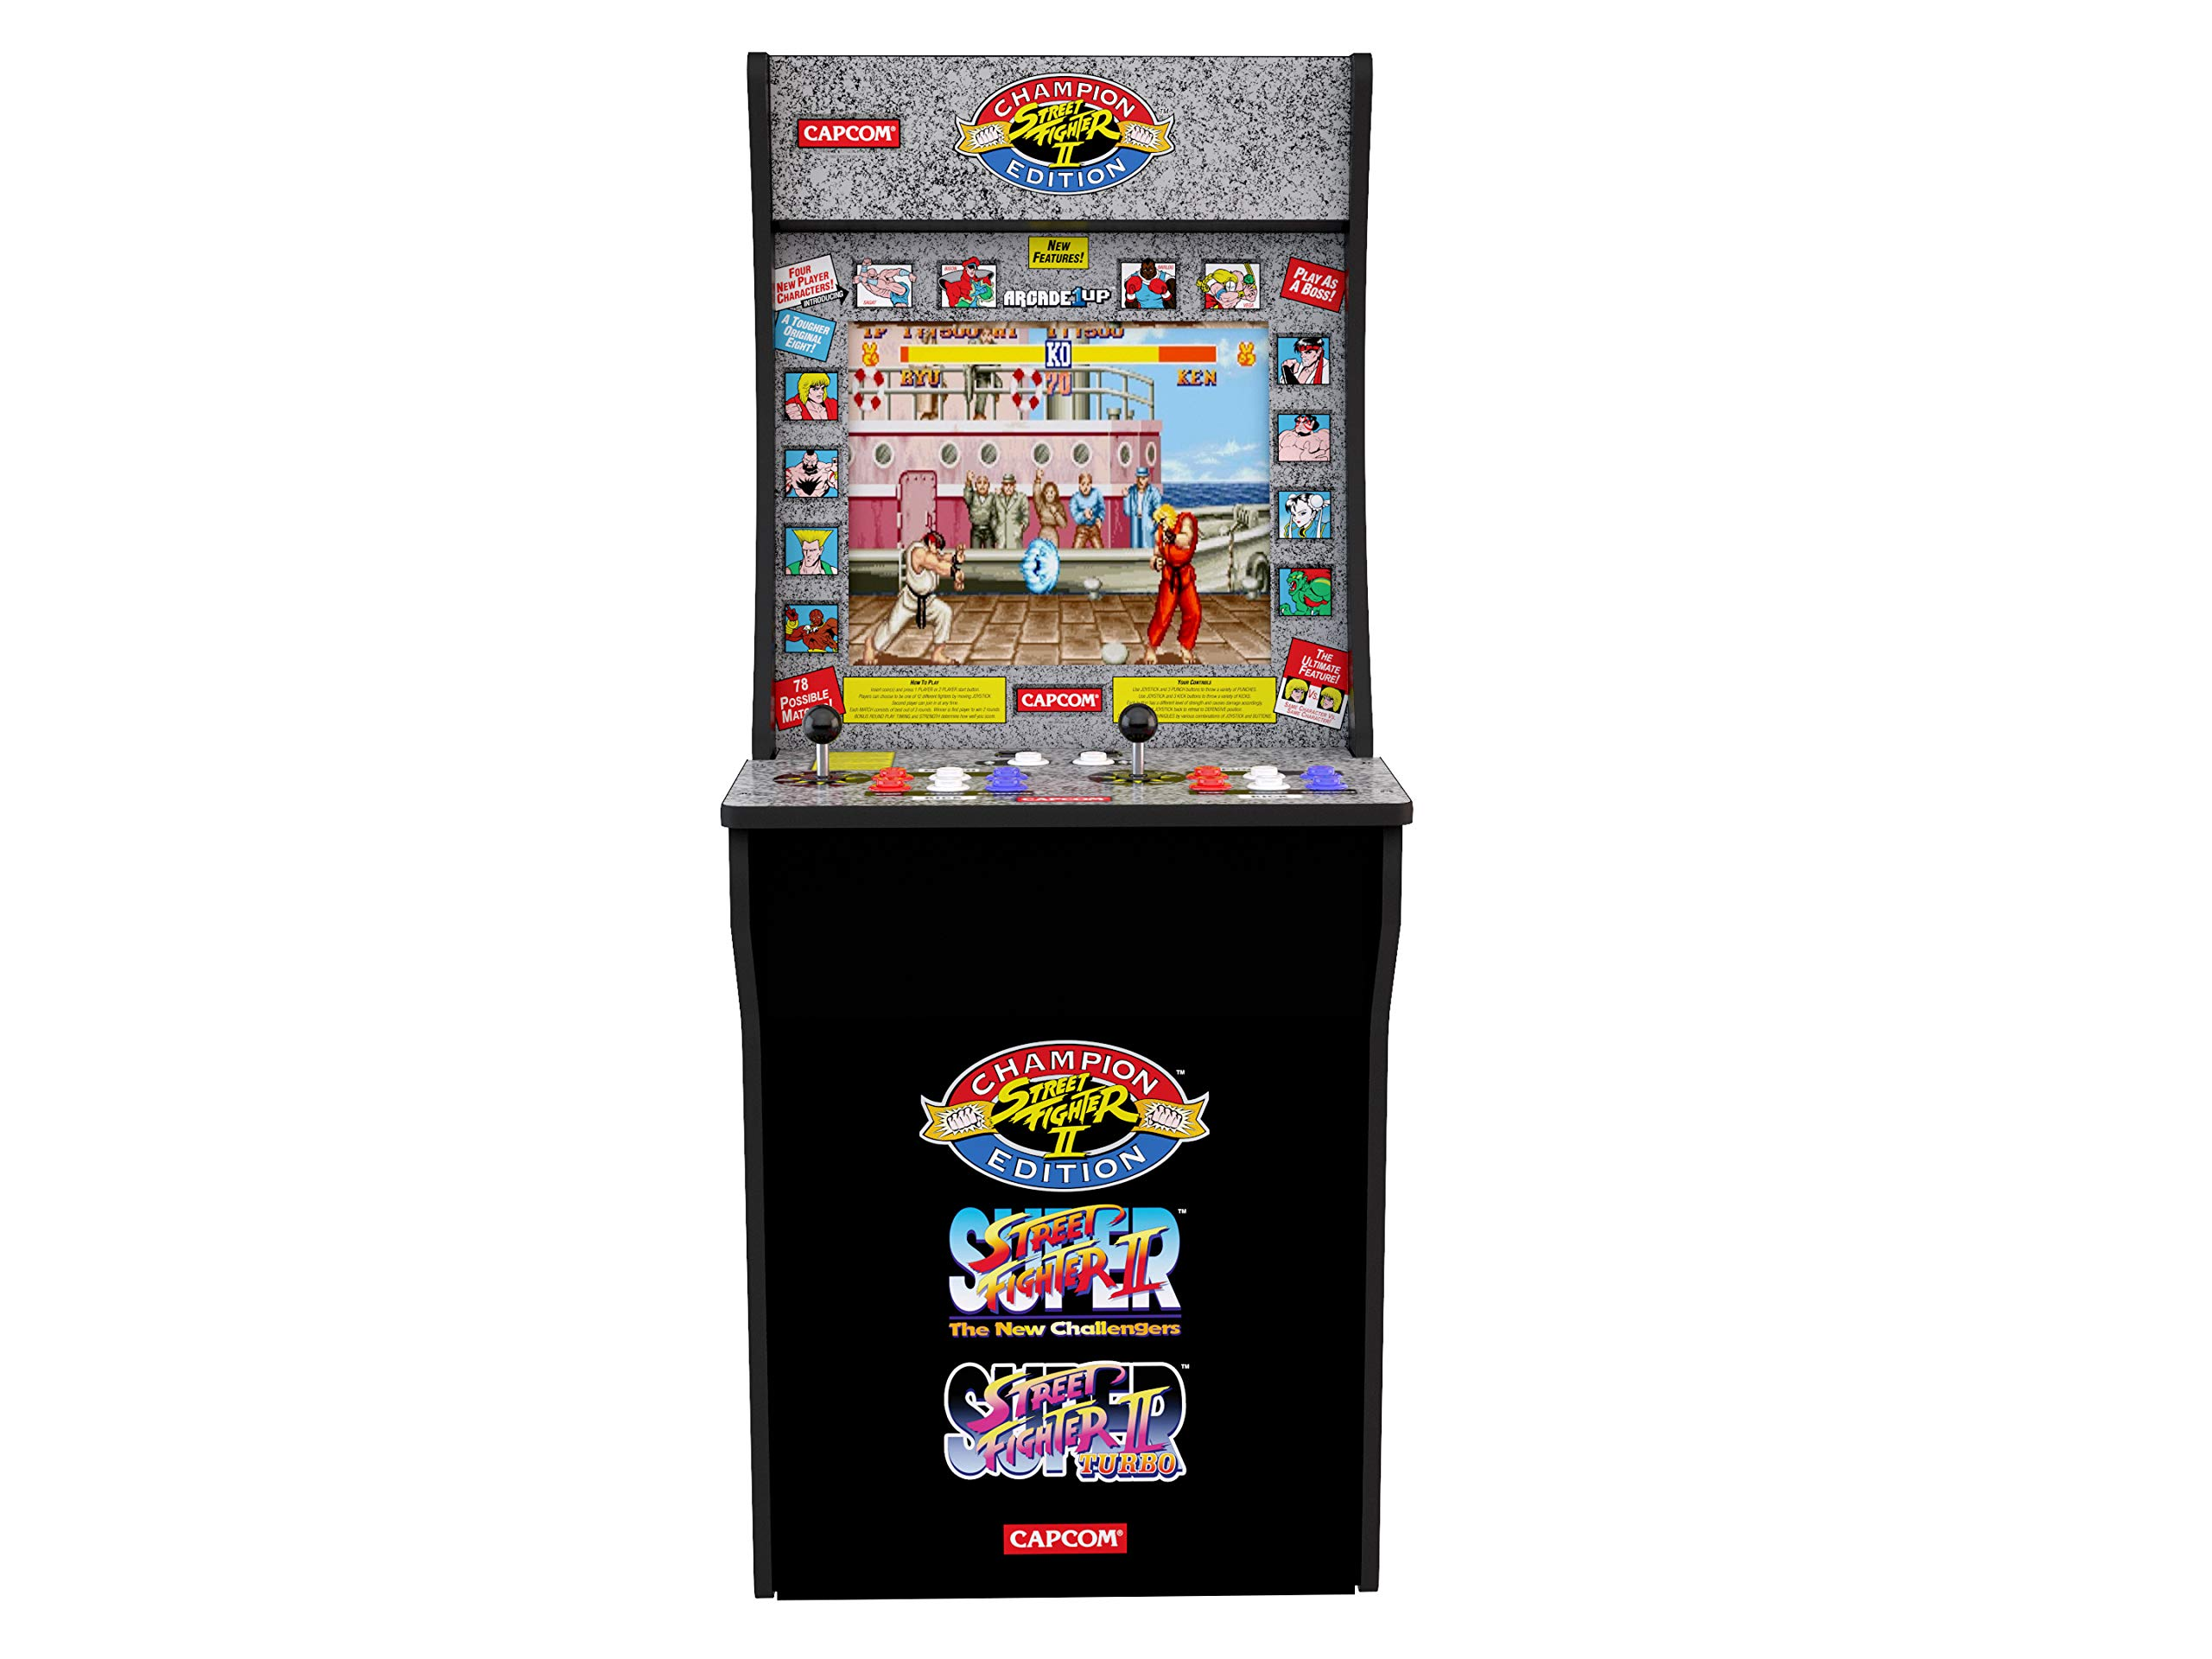 Arcade1Up Street Fighter - Classic 3-in-1 Home Arcade, 4Ft - Not Machine Specific by Arcade1Up (Image #1)